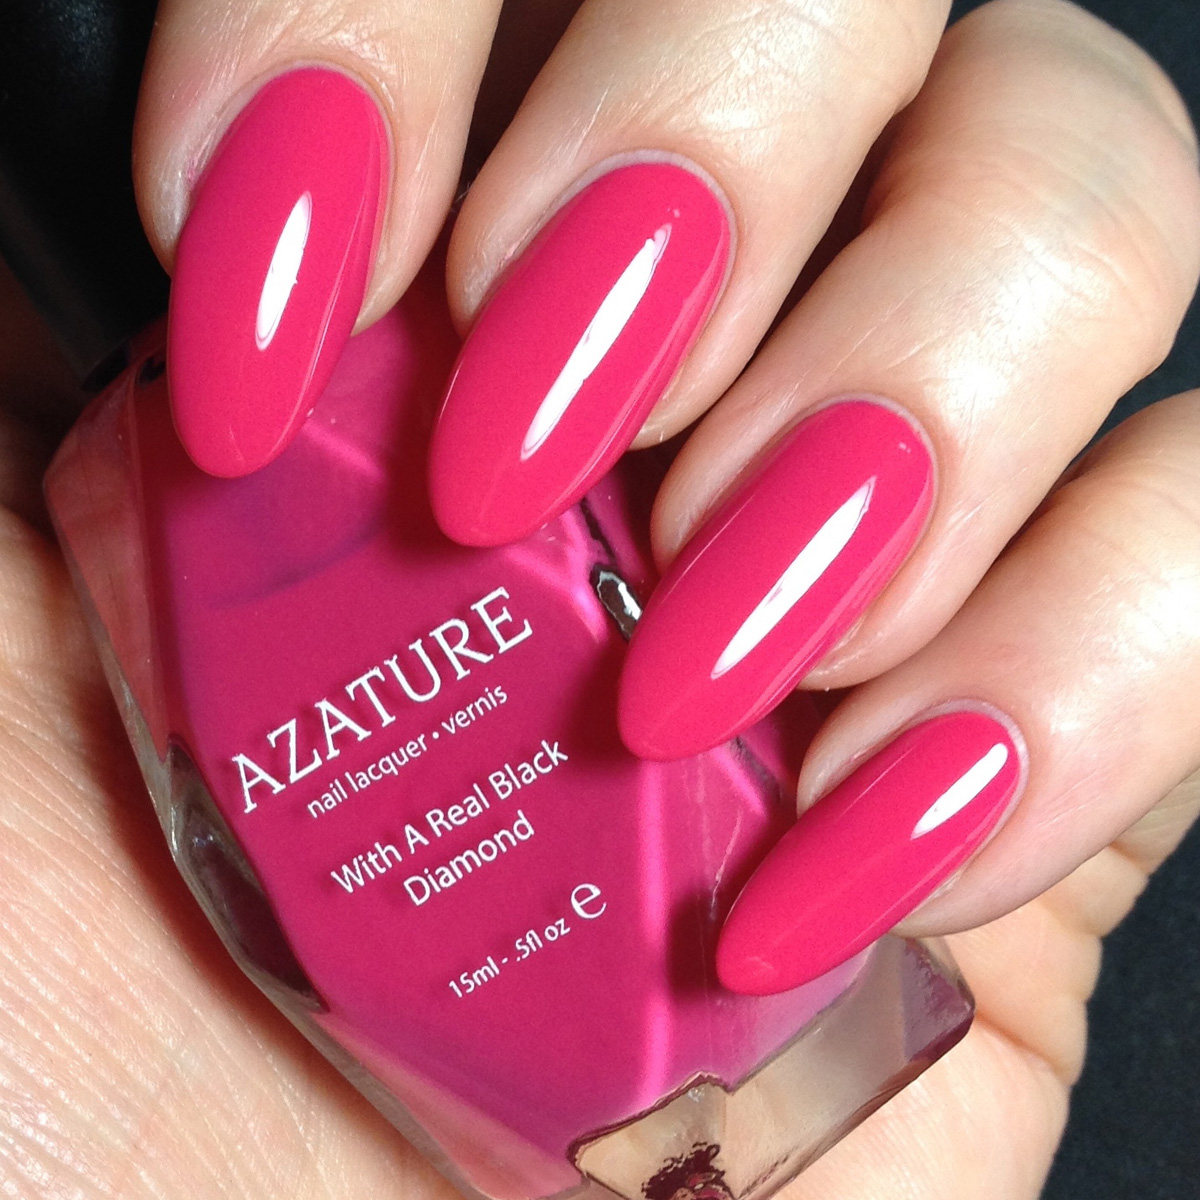 Azature Rose Diamond | A Z A T U R E